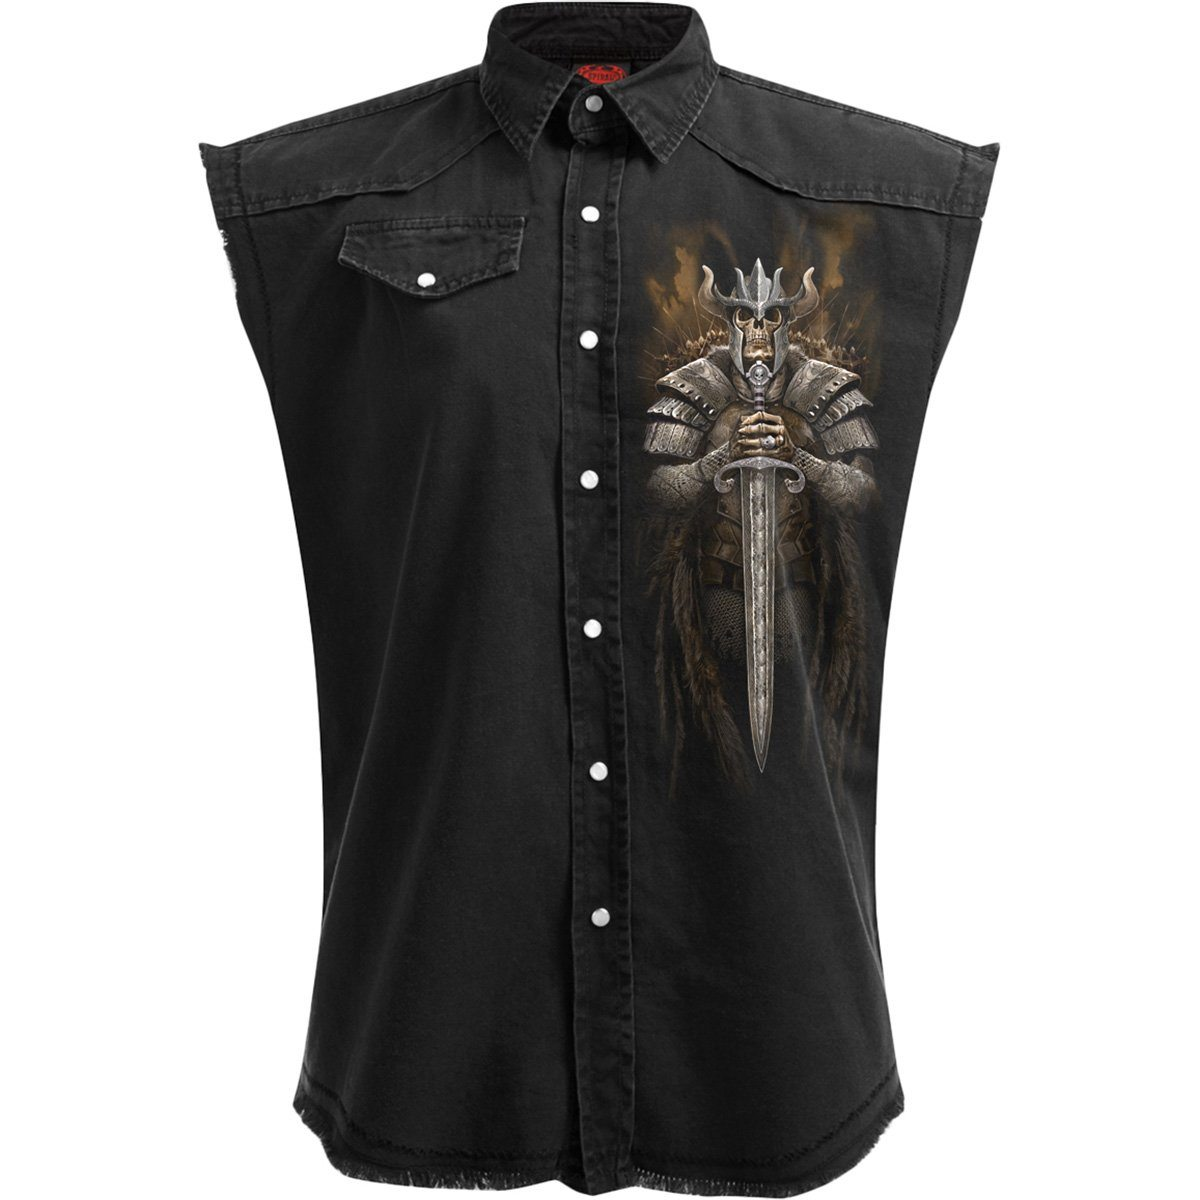 Viking Skull Warrior Men's Black Sleeveless Shirt